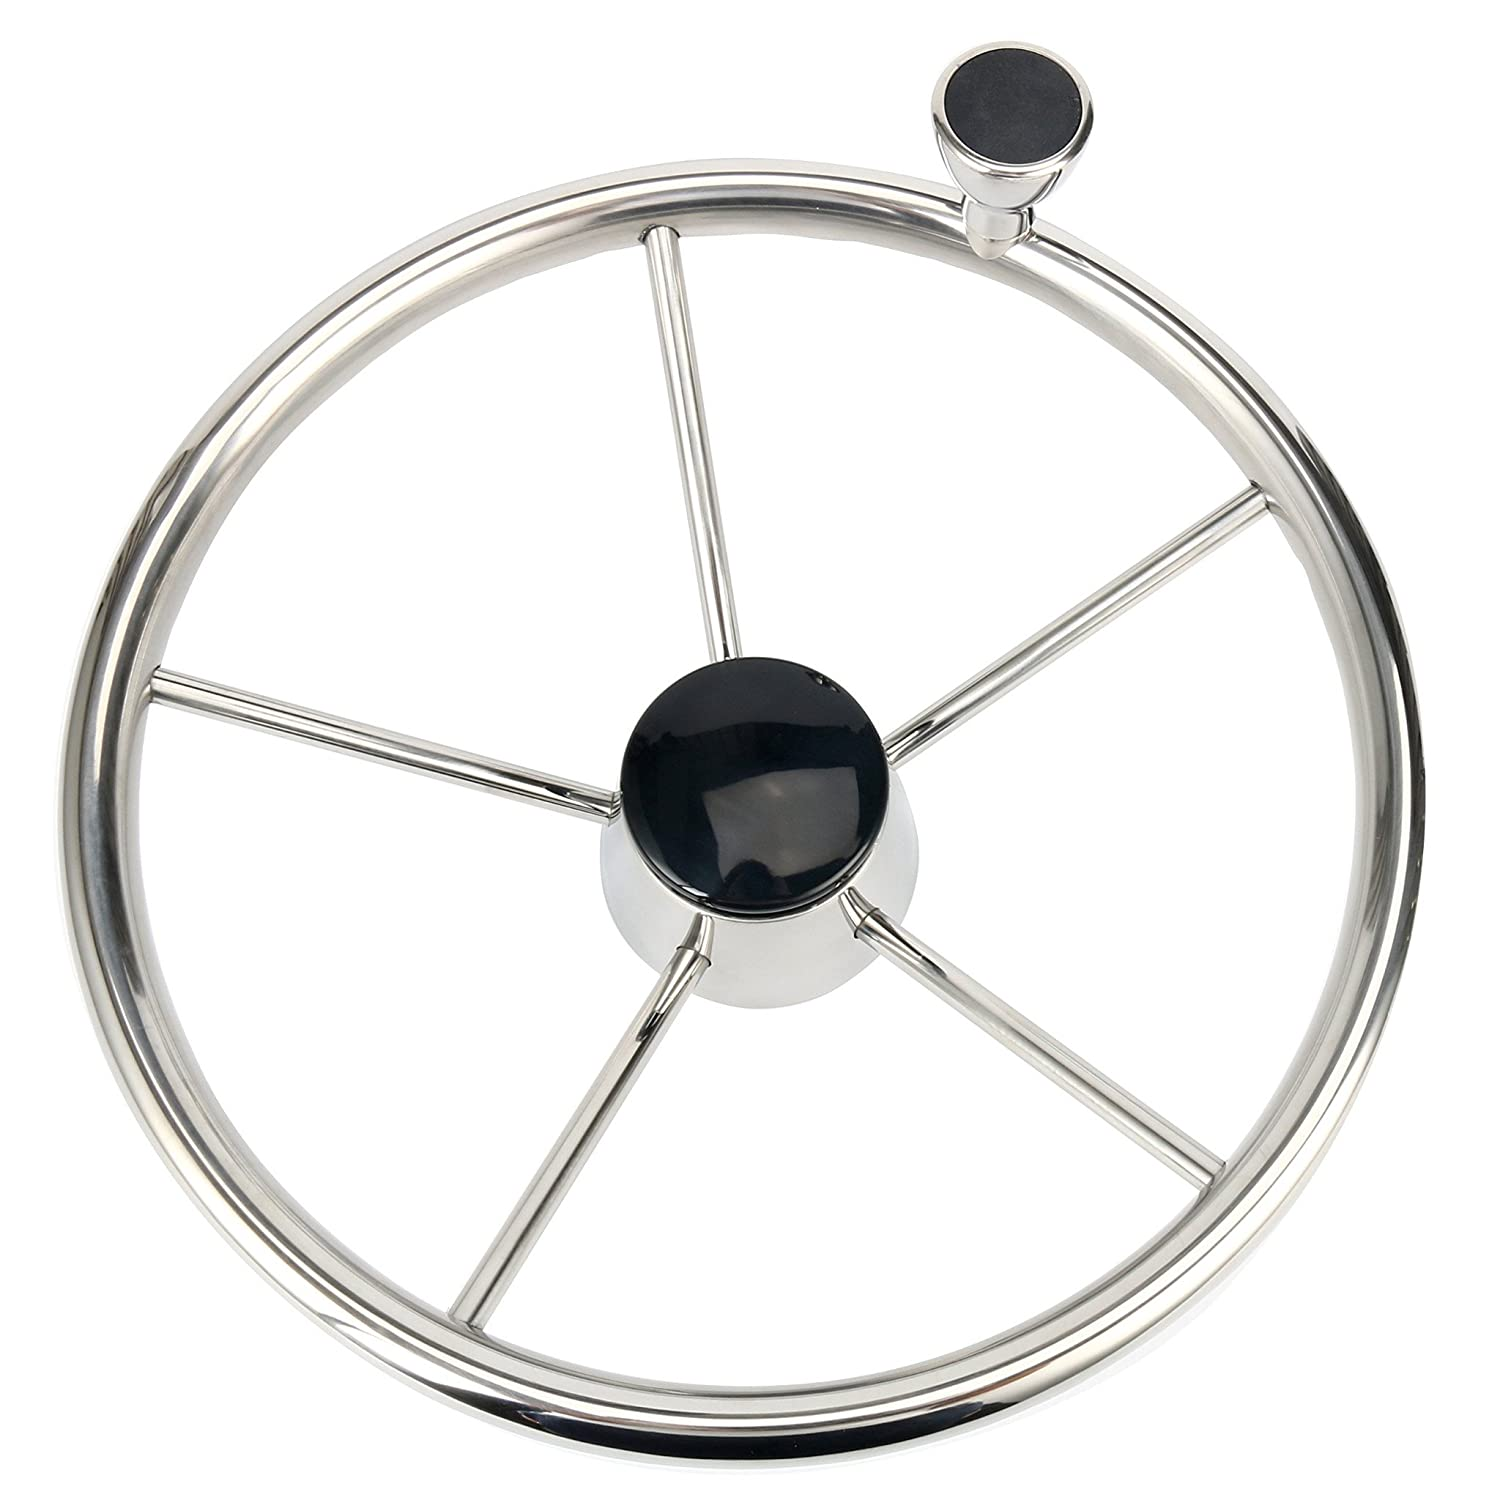 Stainless Steel 5-spoke 13-1/2 Inch Boat Steering Wheel with Knob xingbailong